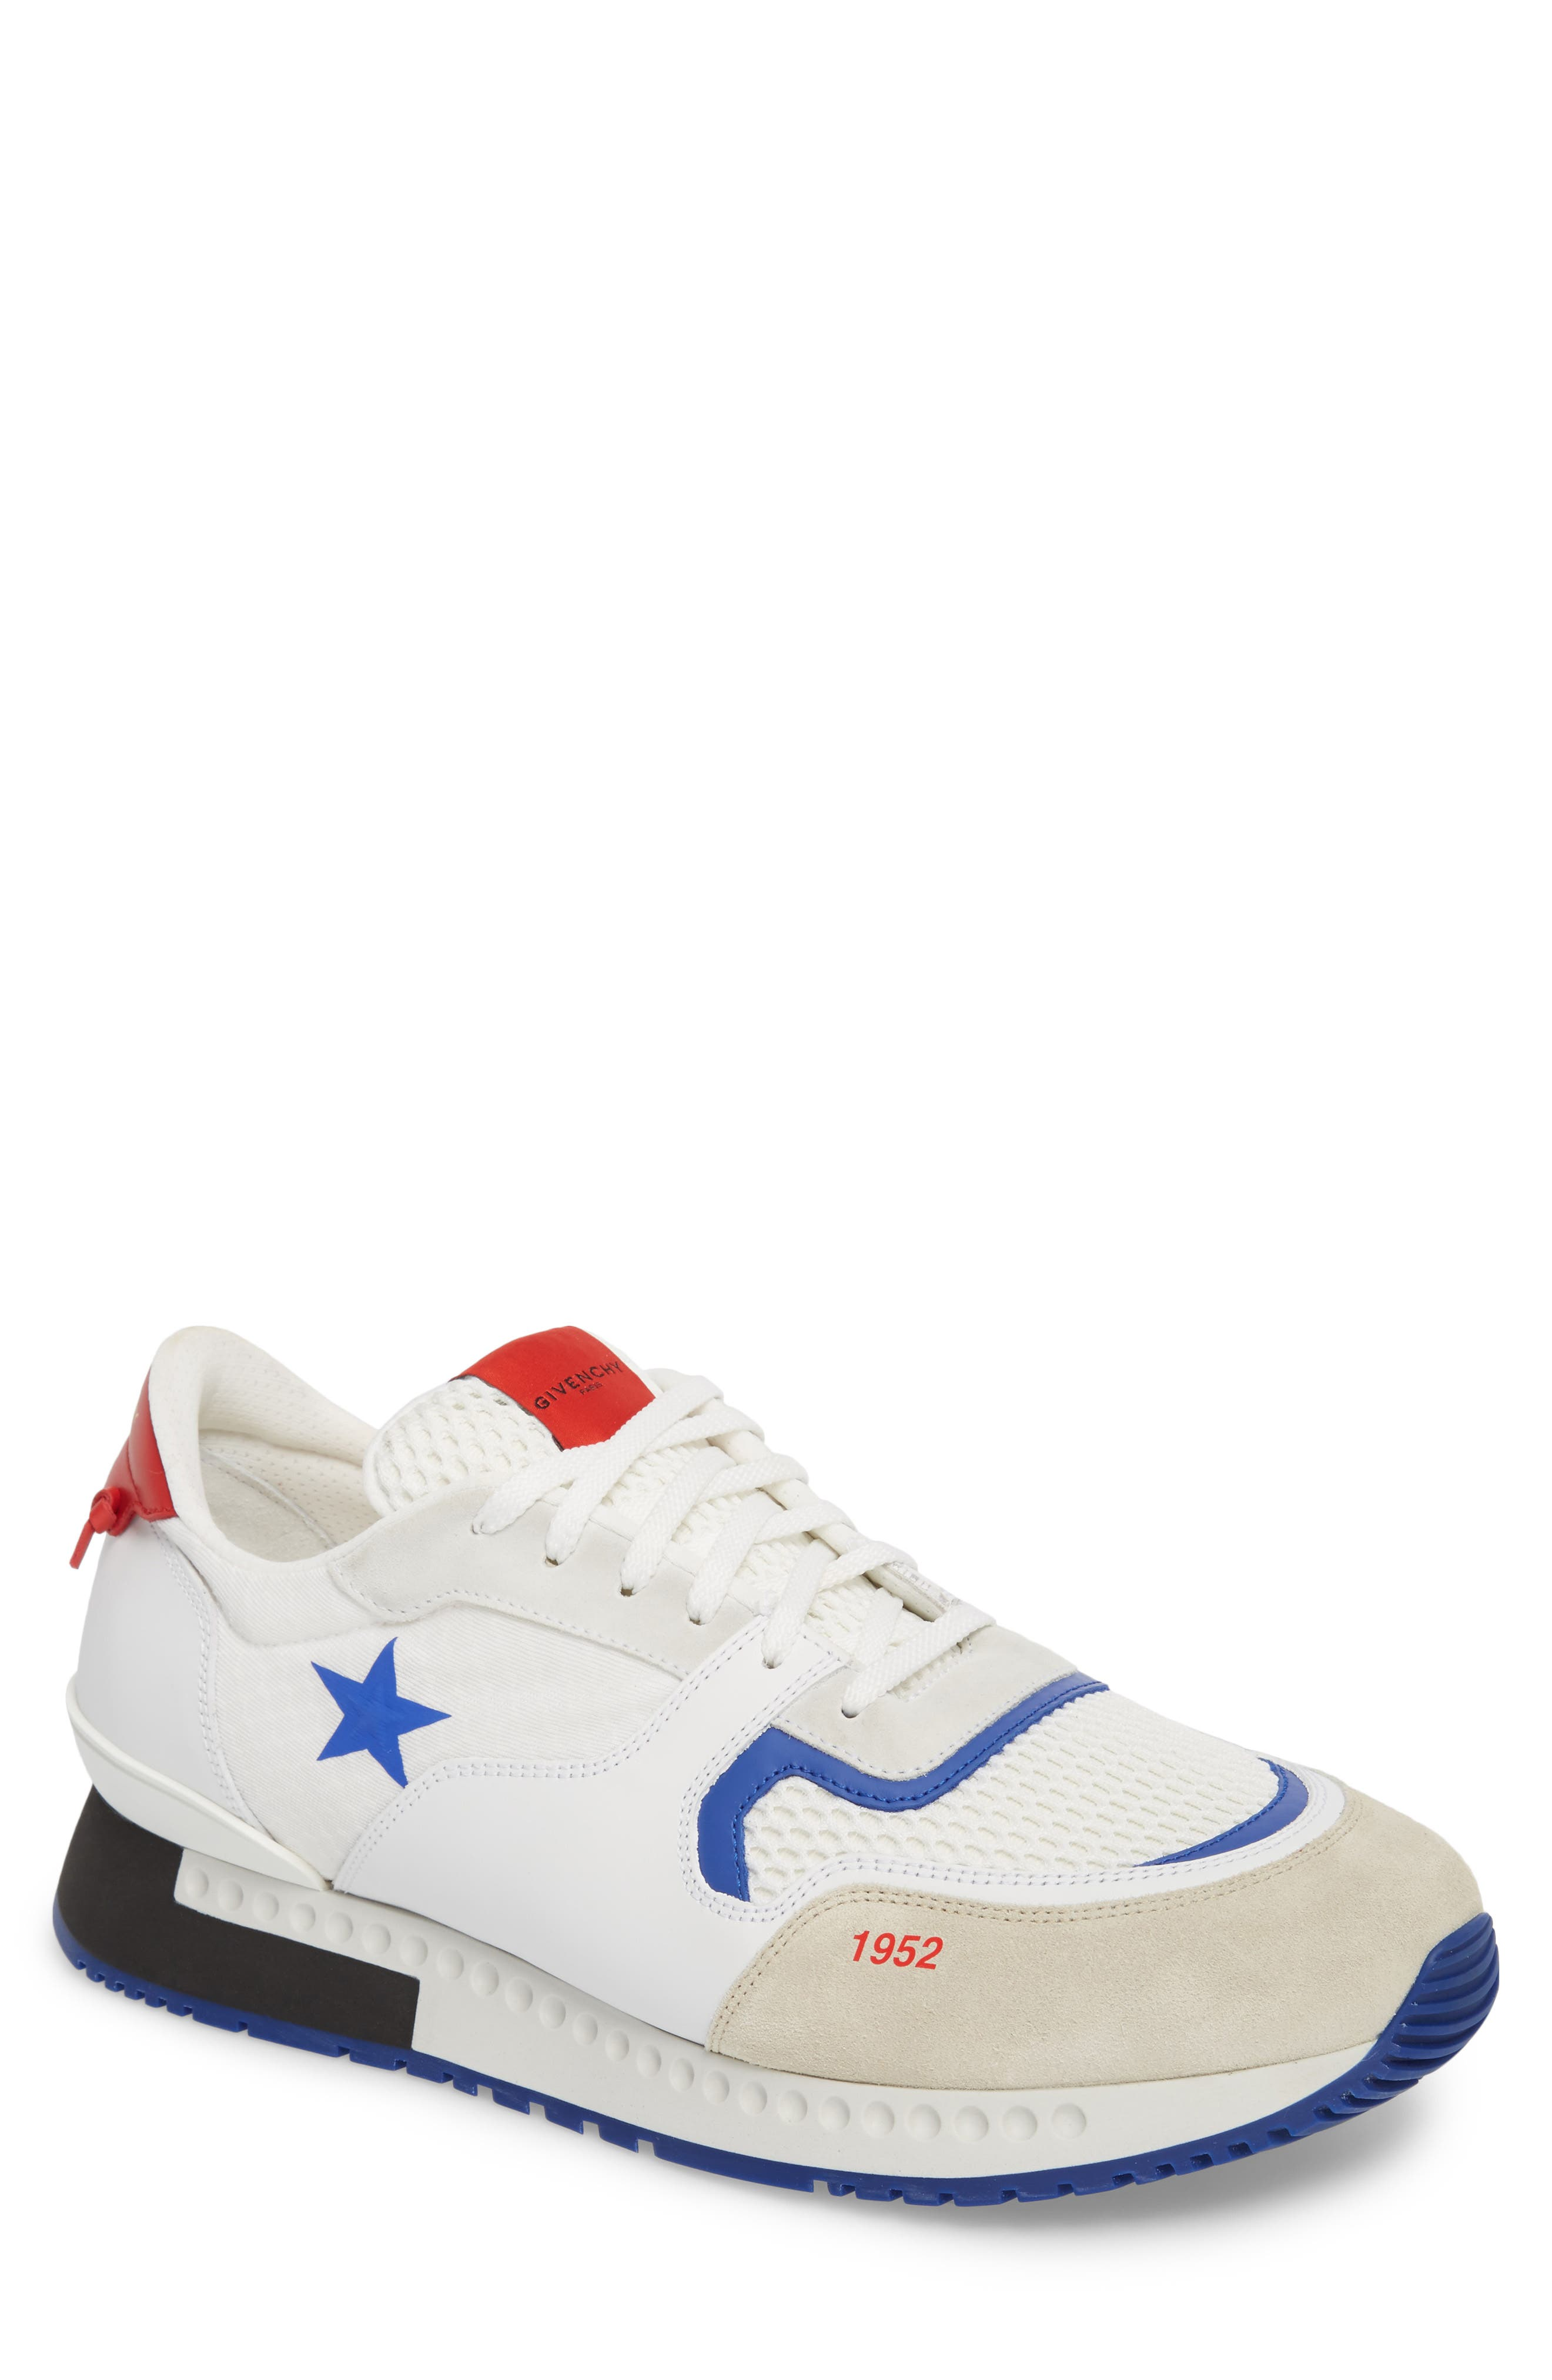 Givenchy  1952 STAR ACTIVE RUNNER SNEAKER